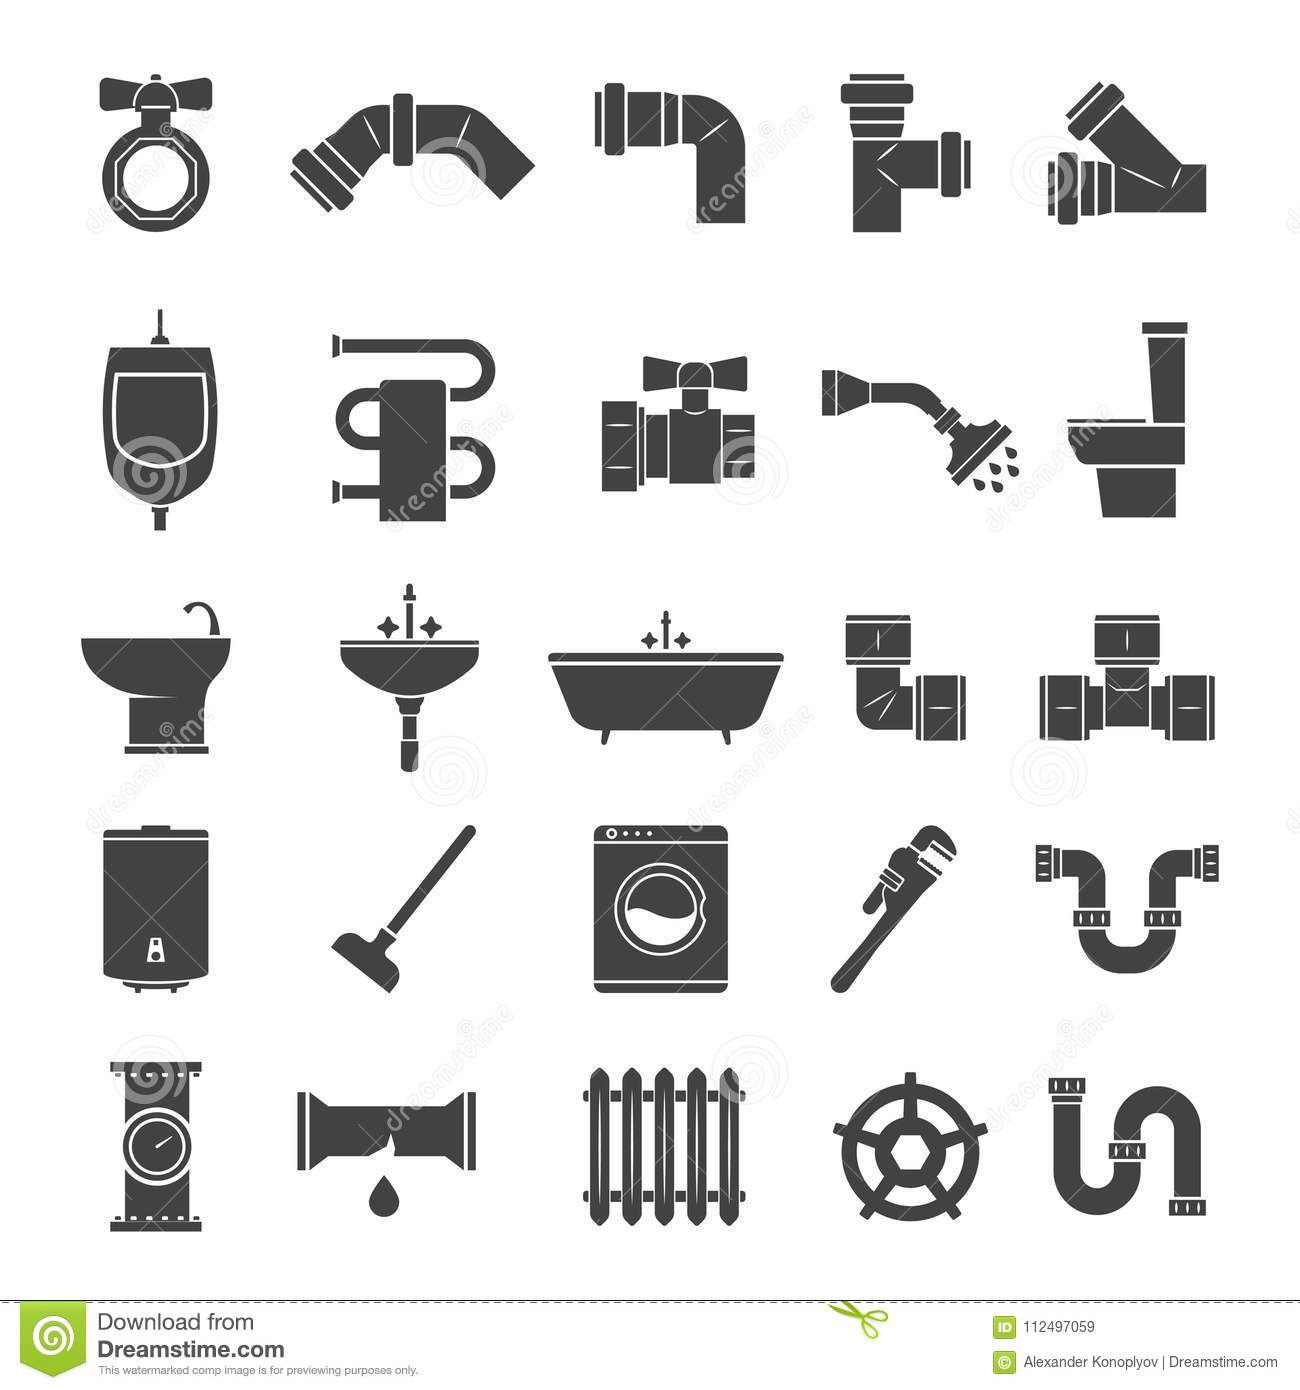 Pipe Fitting Vector Set Pipeline Vector Illustration